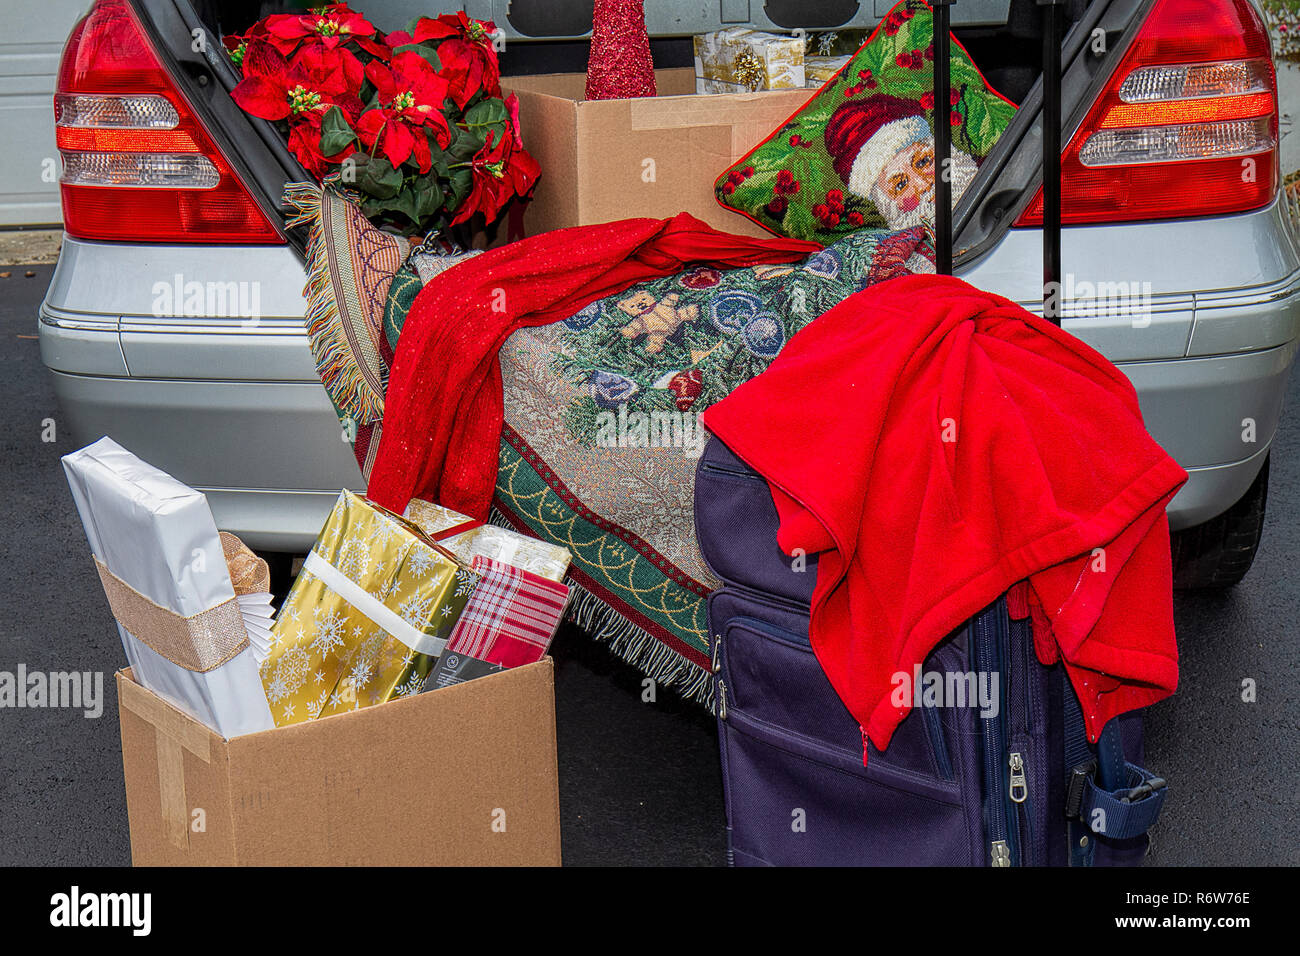 Packing trunk of car with Christmas gifts for holiday traveling - Stock Image